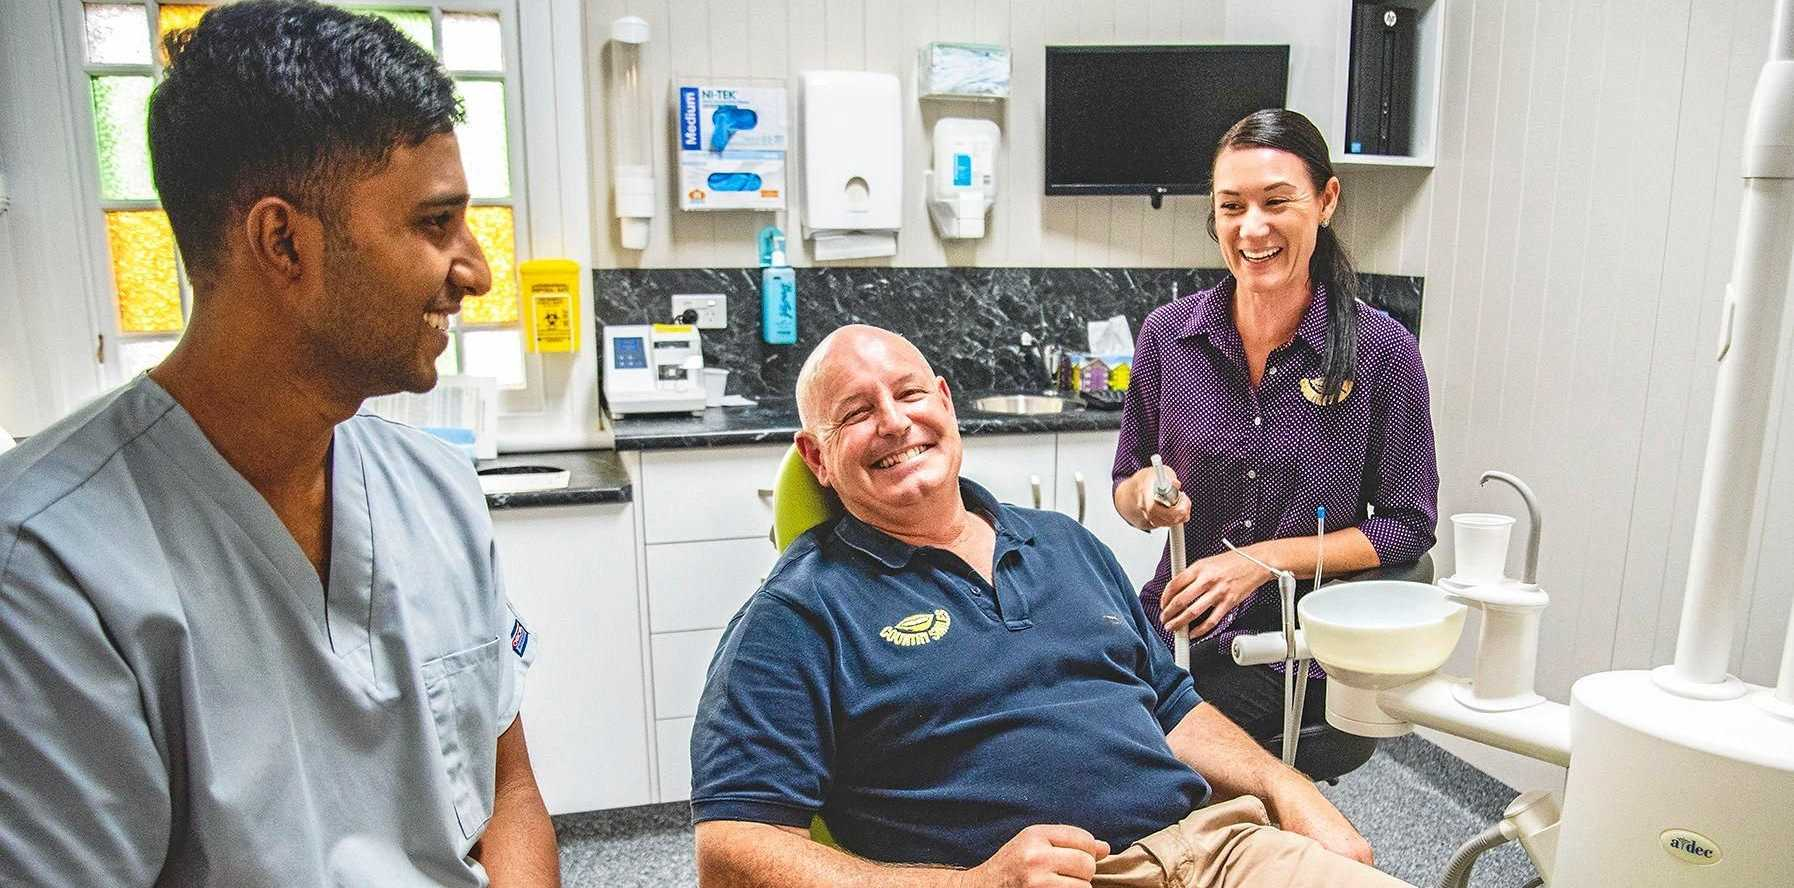 Dr Sadit Reza, John Payne and Kira Wilde are part of a growing team of dental professionals at Country Smiles Dental Services in Warwick.